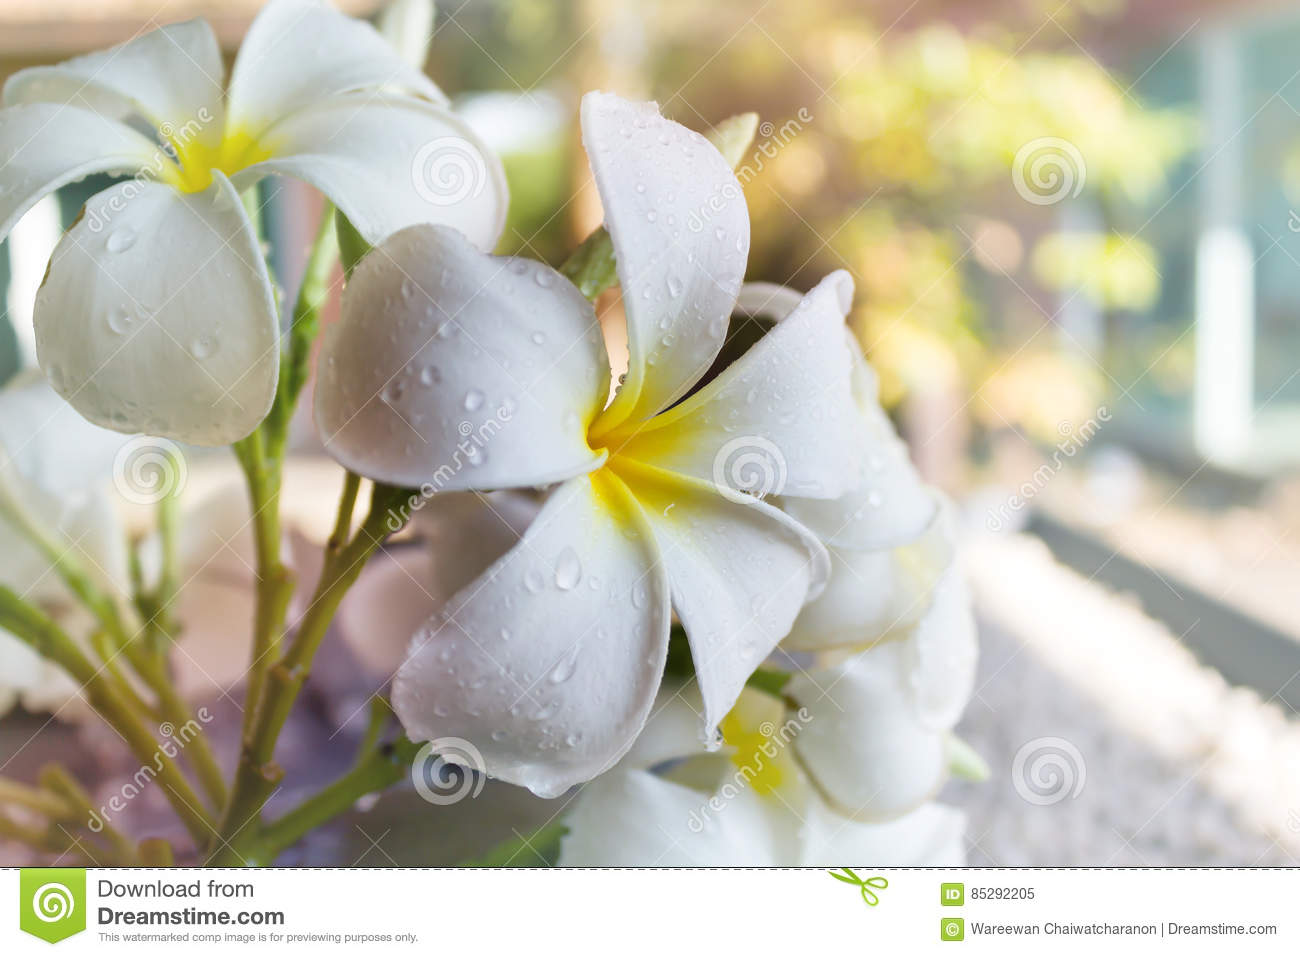 Contemporary dream interpretation of white flowers image collection seeing white flowers in dream image collections flower decoration mightylinksfo